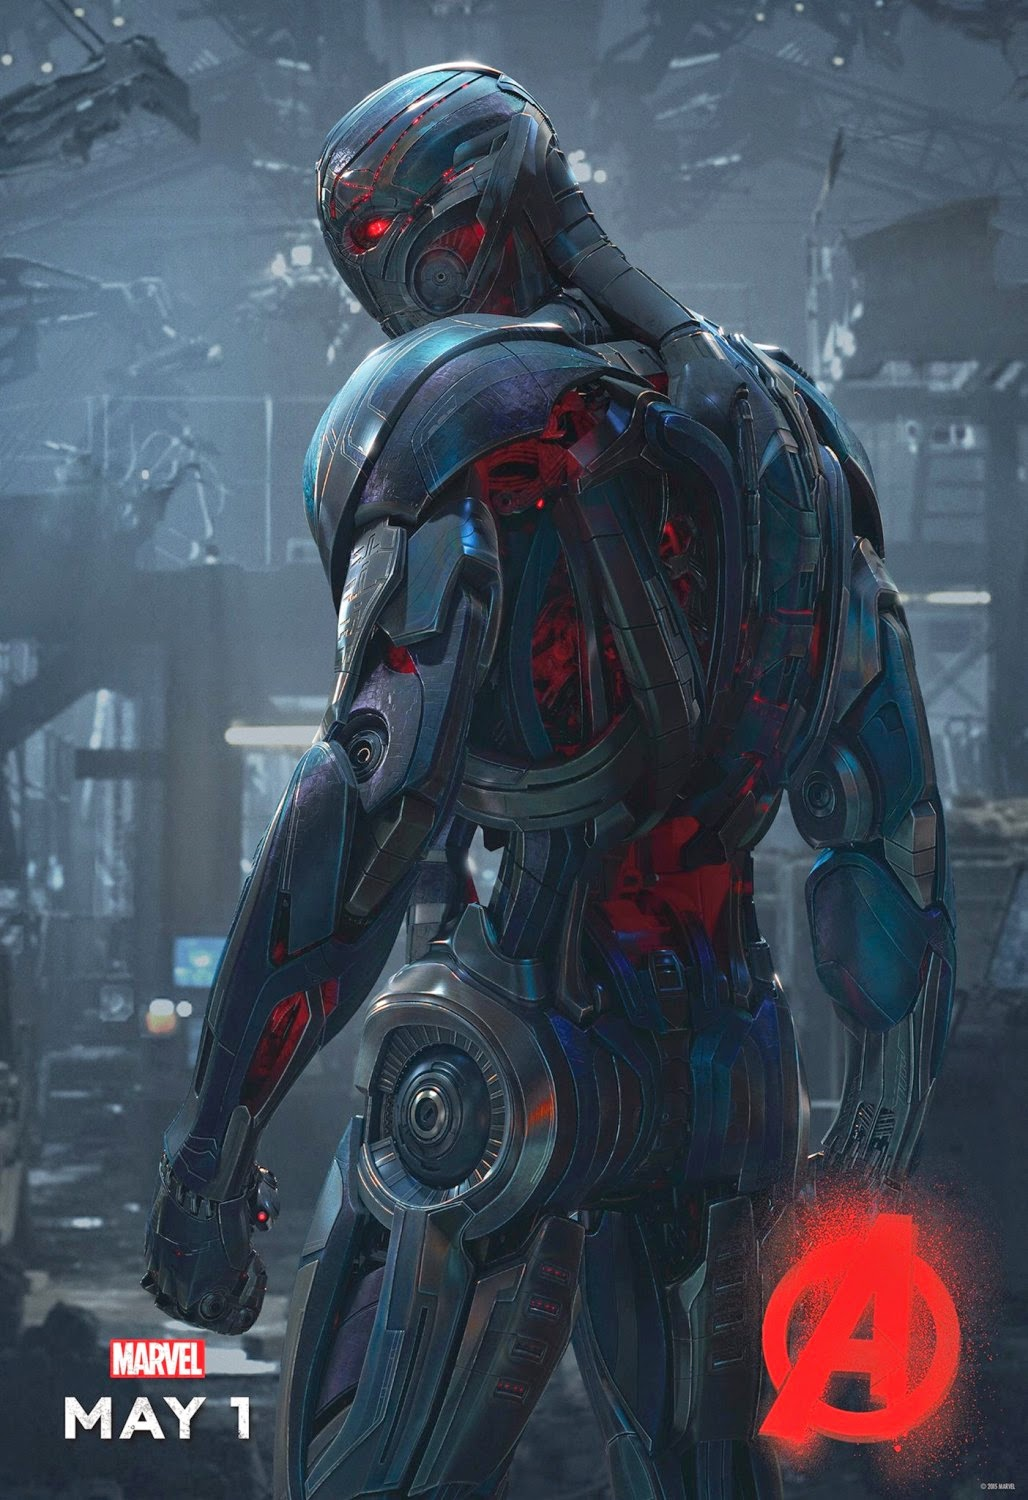 Marvel's Avengers: Age of Ultron Character Movie Poster Set - James Spader as Ultron